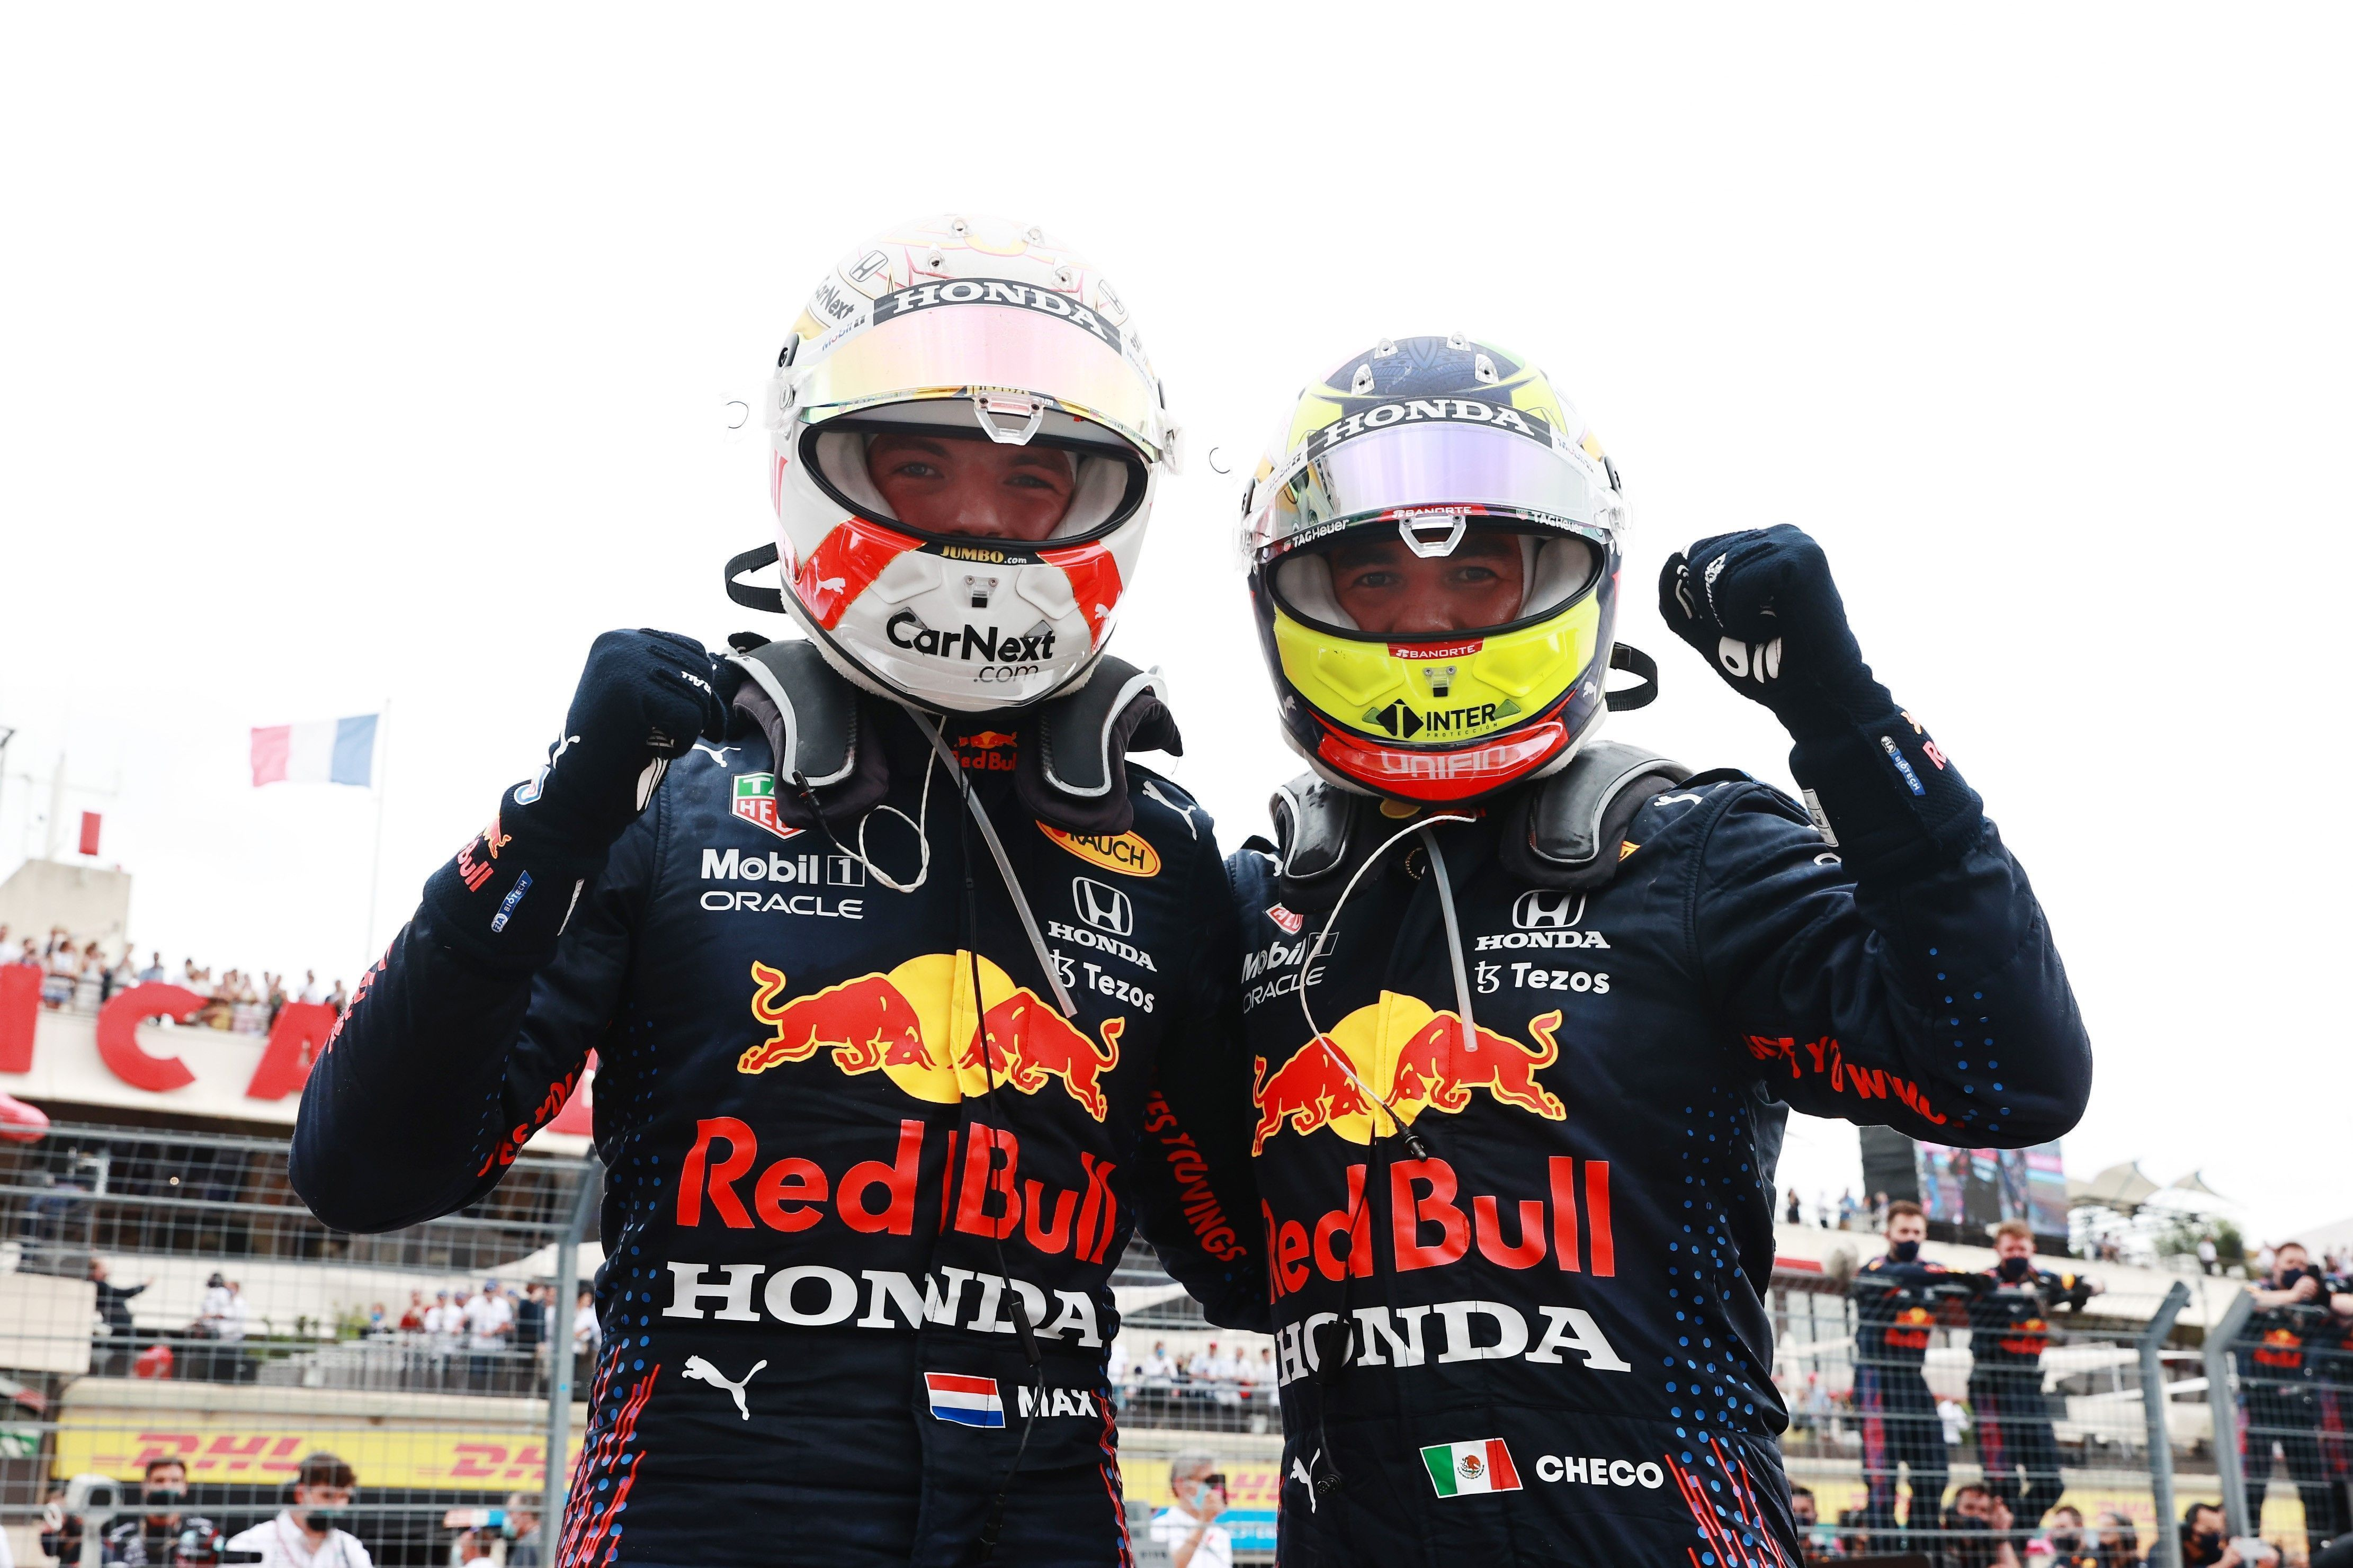 DOUBLE PODIUM FOR RED BULL RACING HONDA AT FRENCH GP